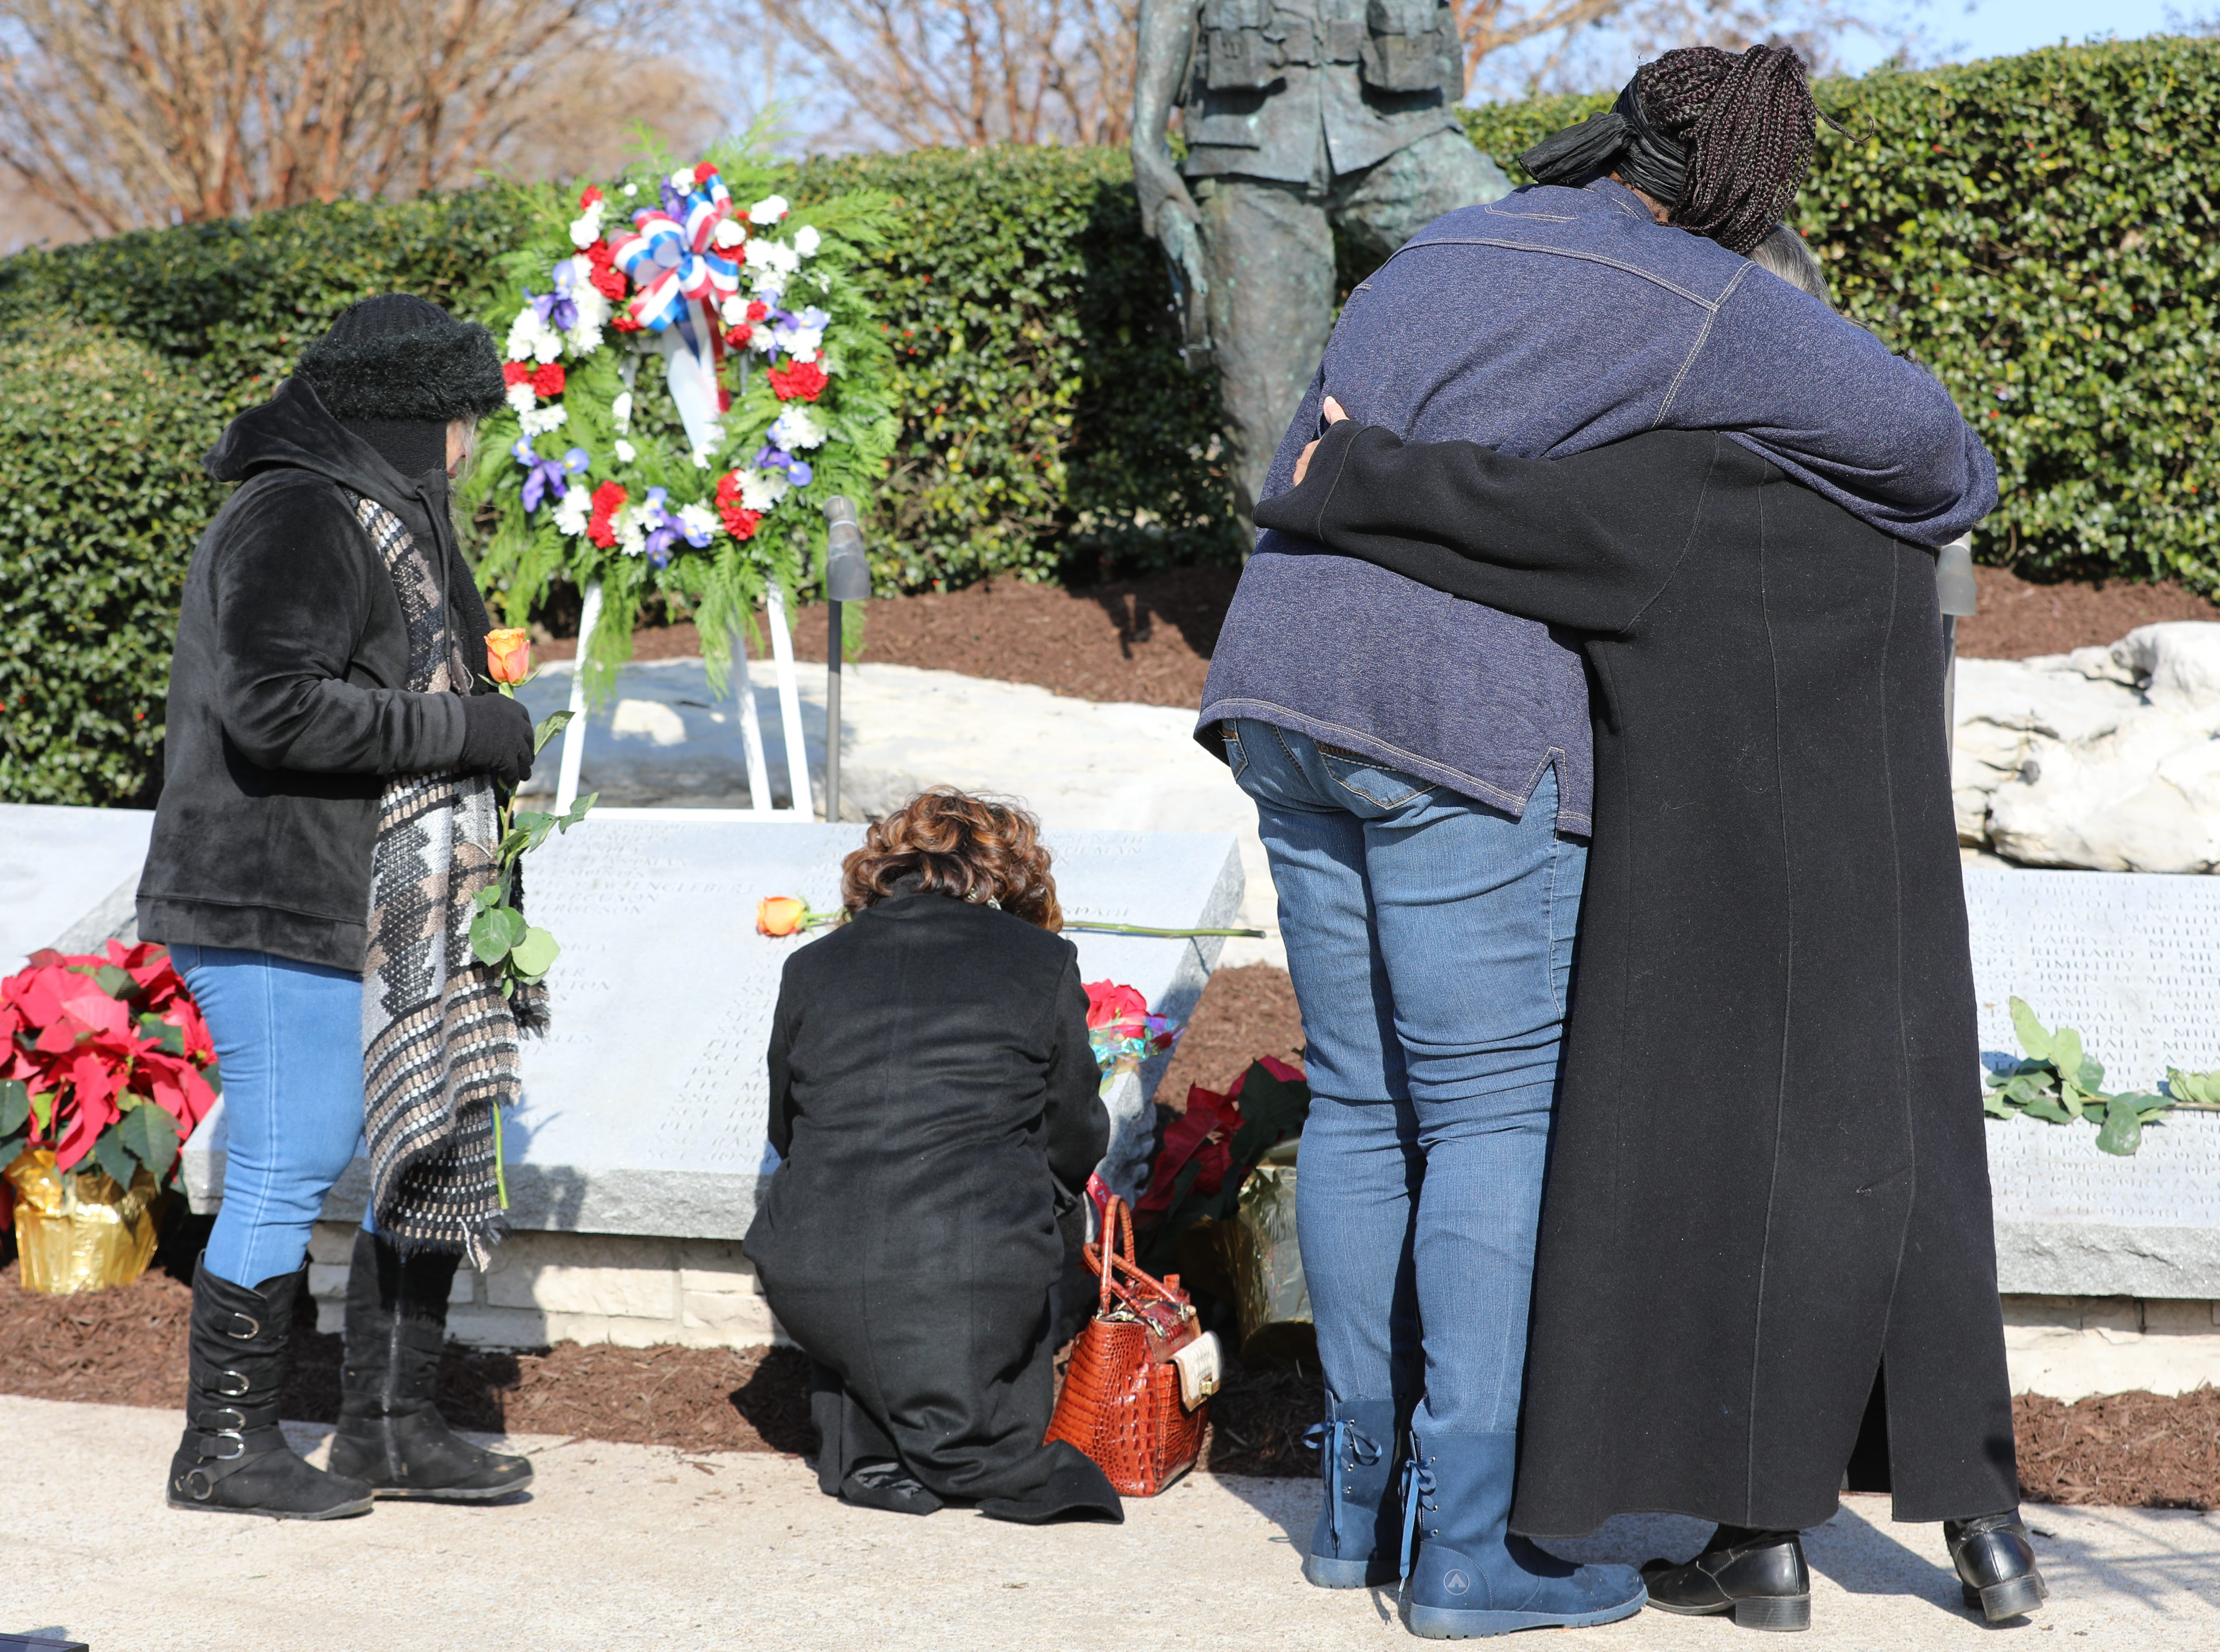 Family gather and hold each other at the Gander Memorial in Hopkinsville, KY Dec. 12,2018.